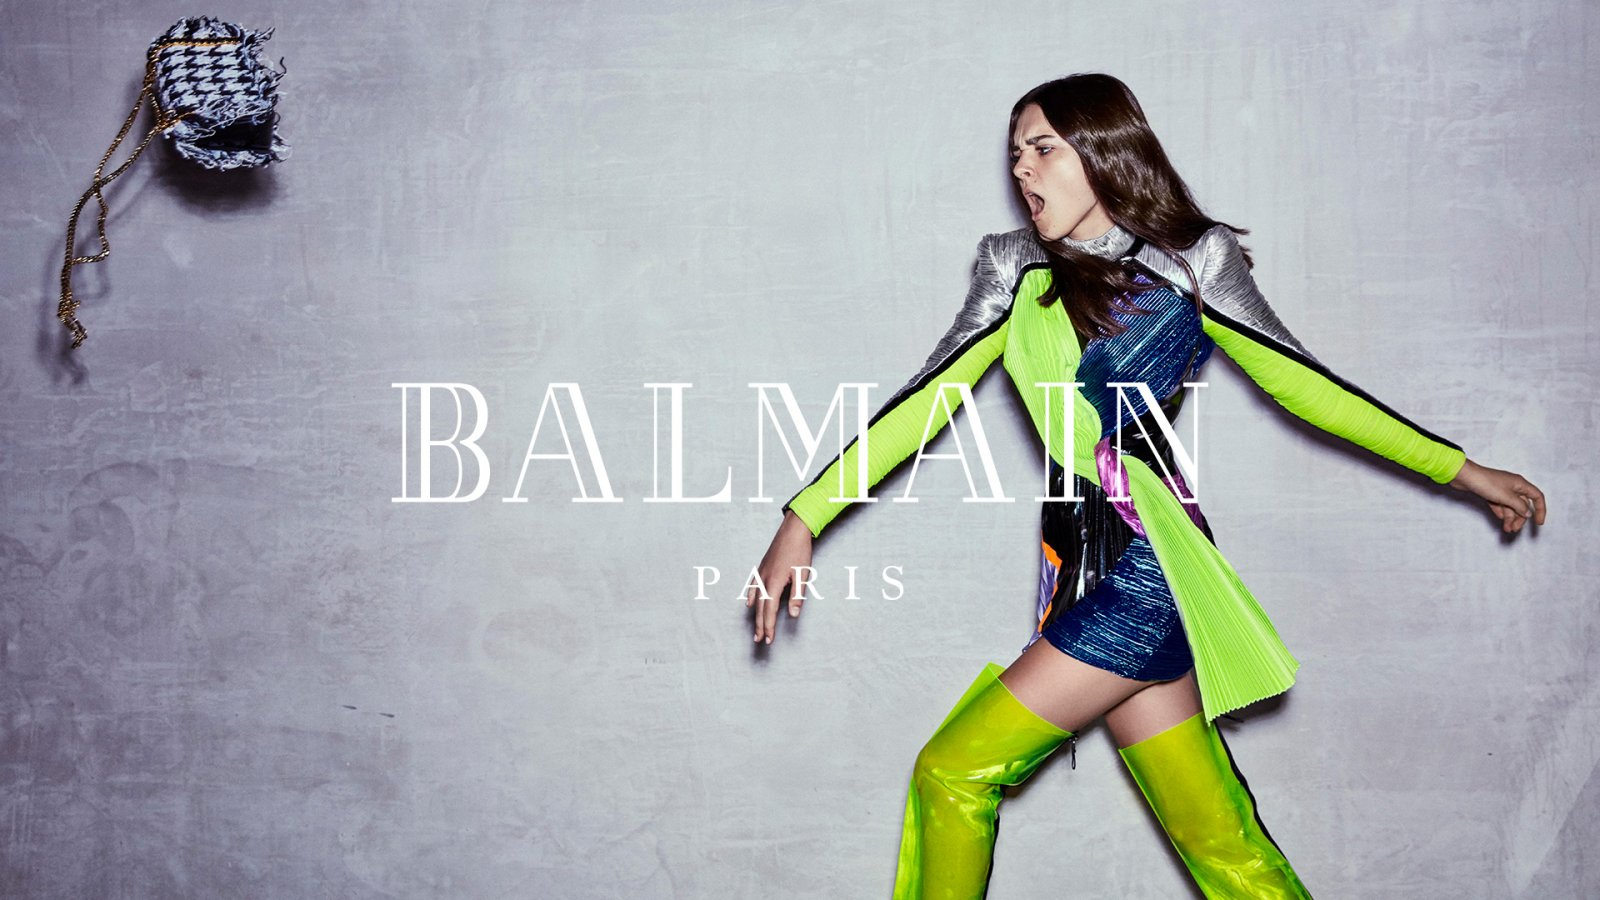 Balmain Rounds Out Cast in Fall 2018 Campaign